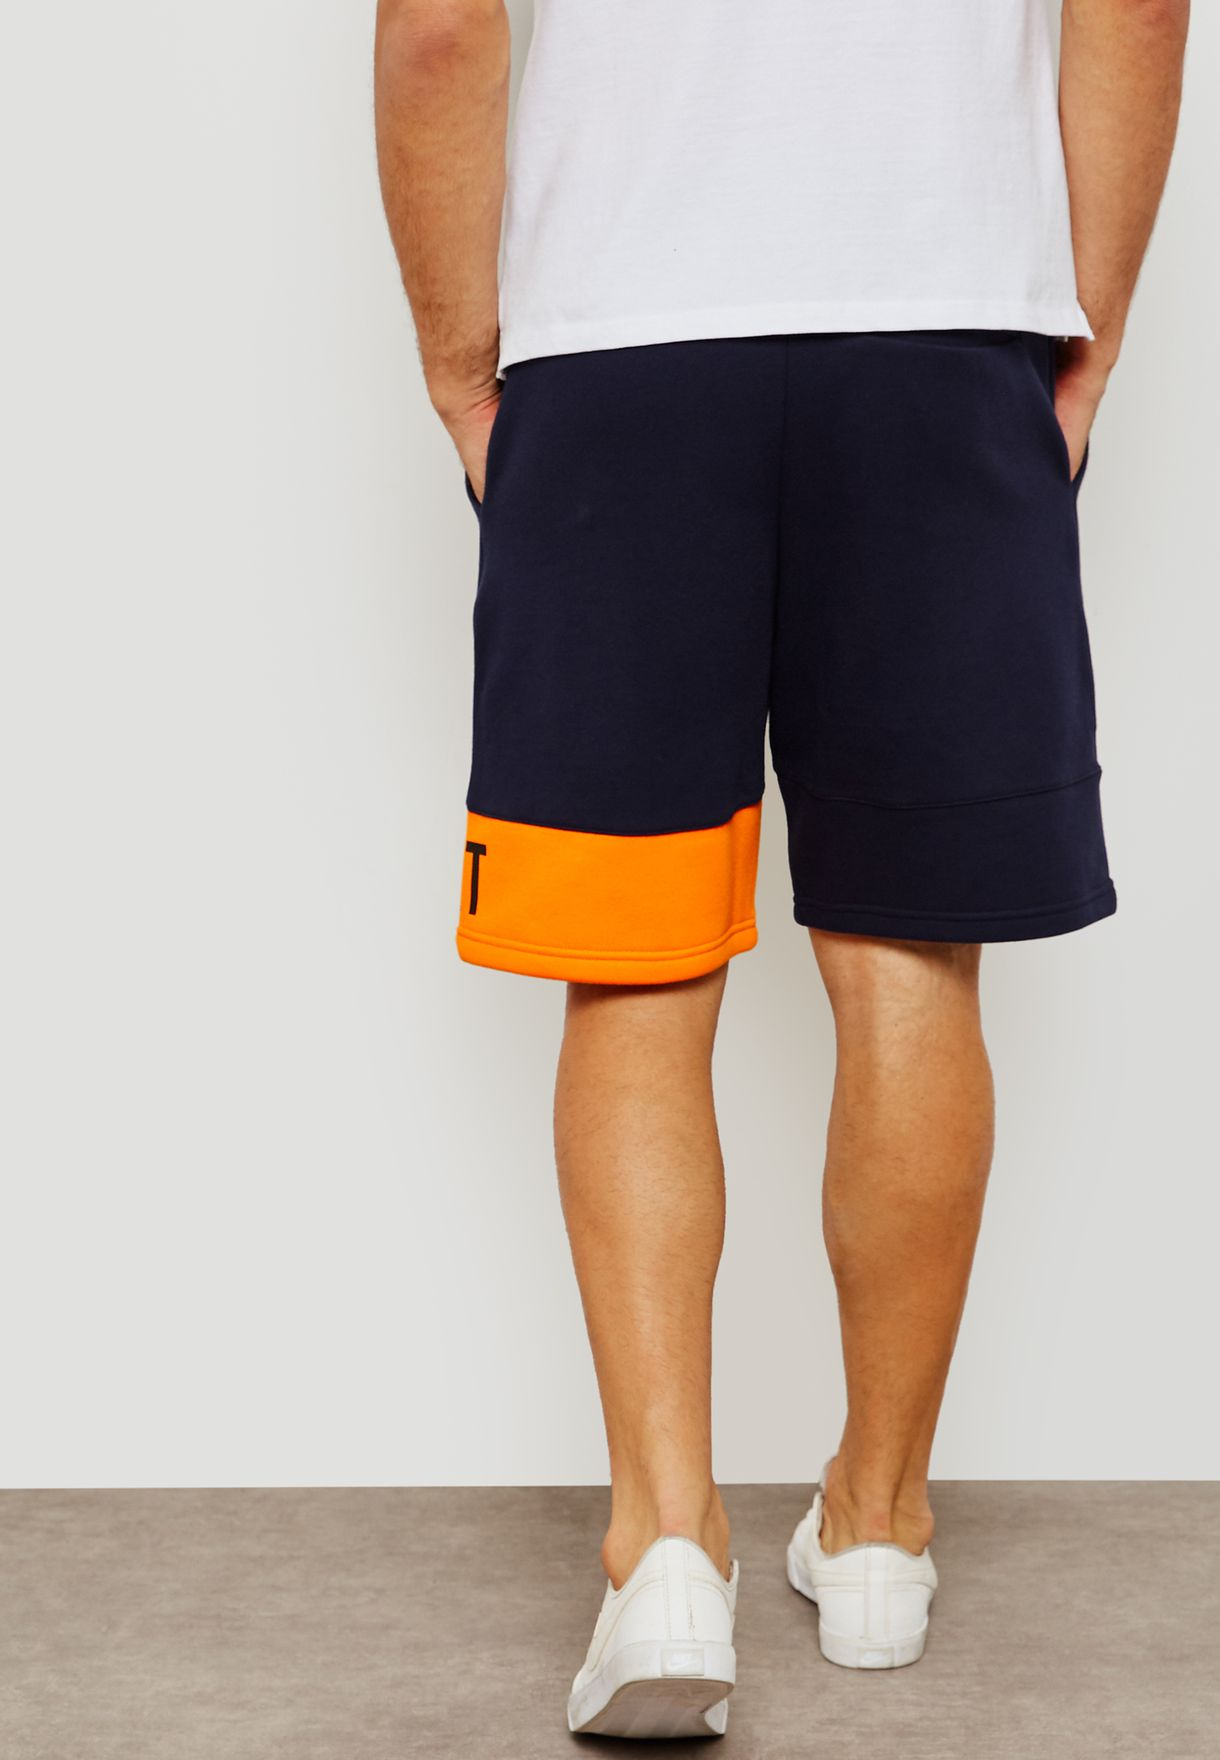 89e9466485f14 Shop Nike navy Court Heritage Shorts 934658-407 for Men in Saudi ...